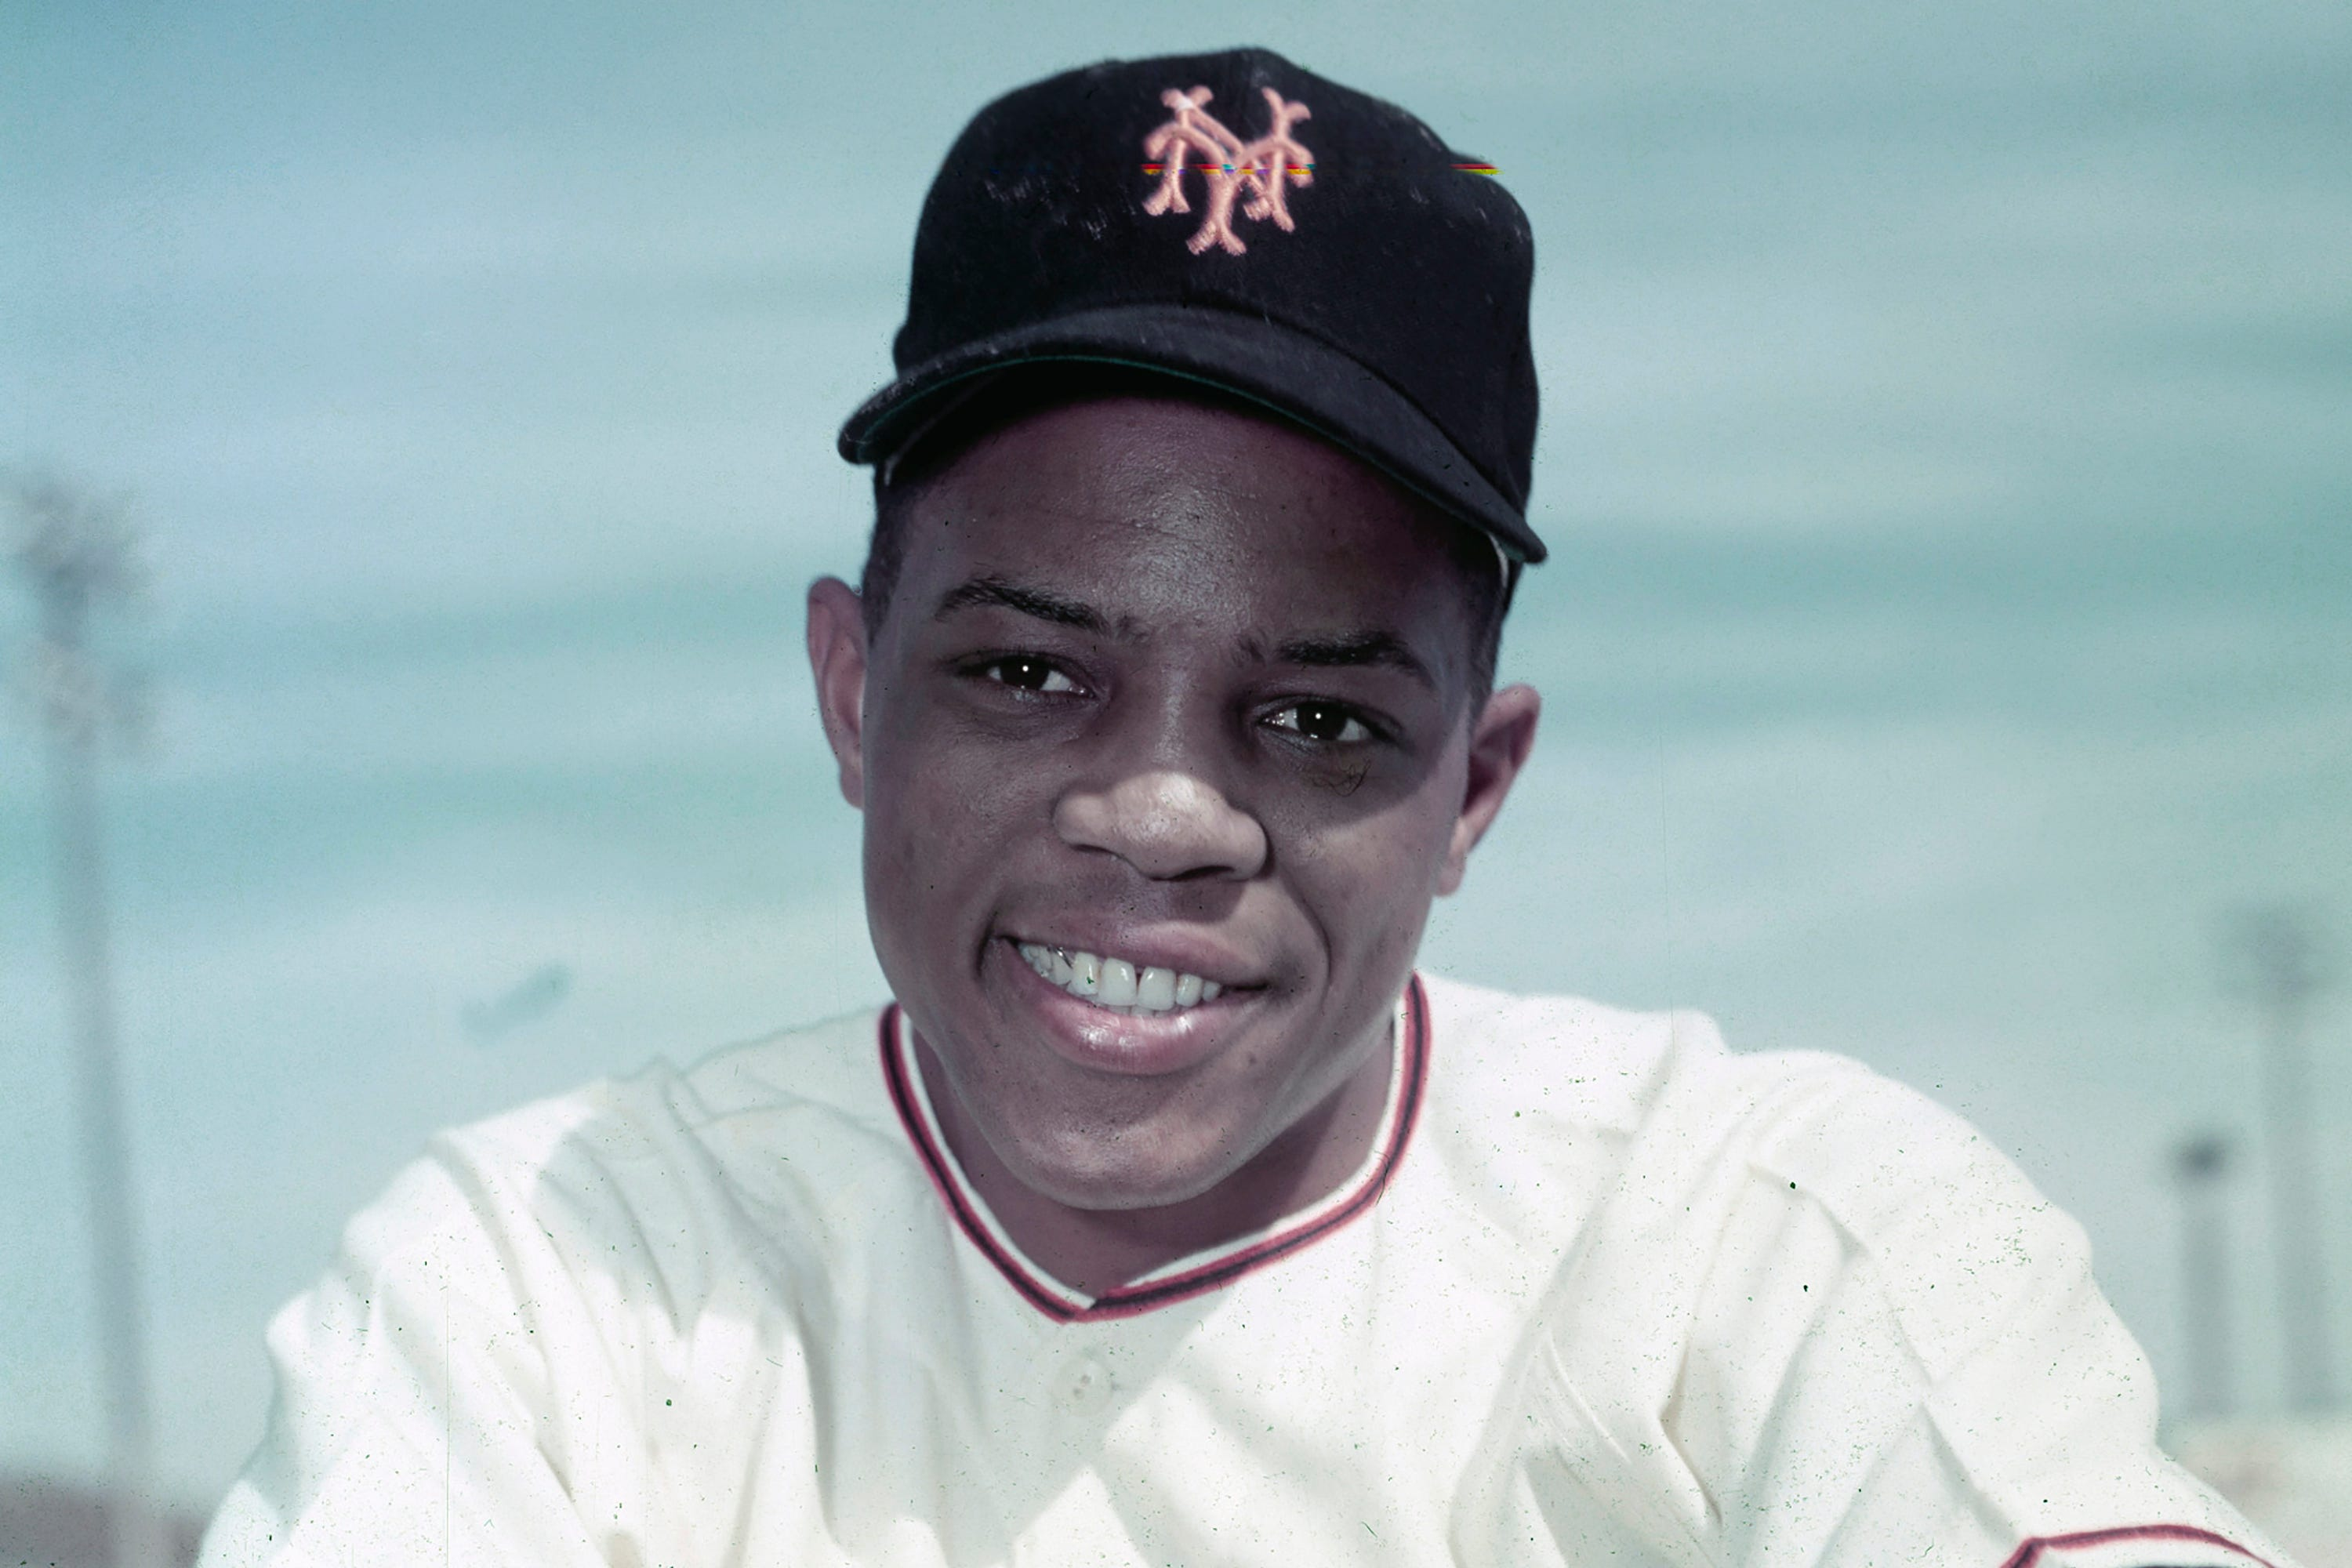 Willie Mays wearing a hat